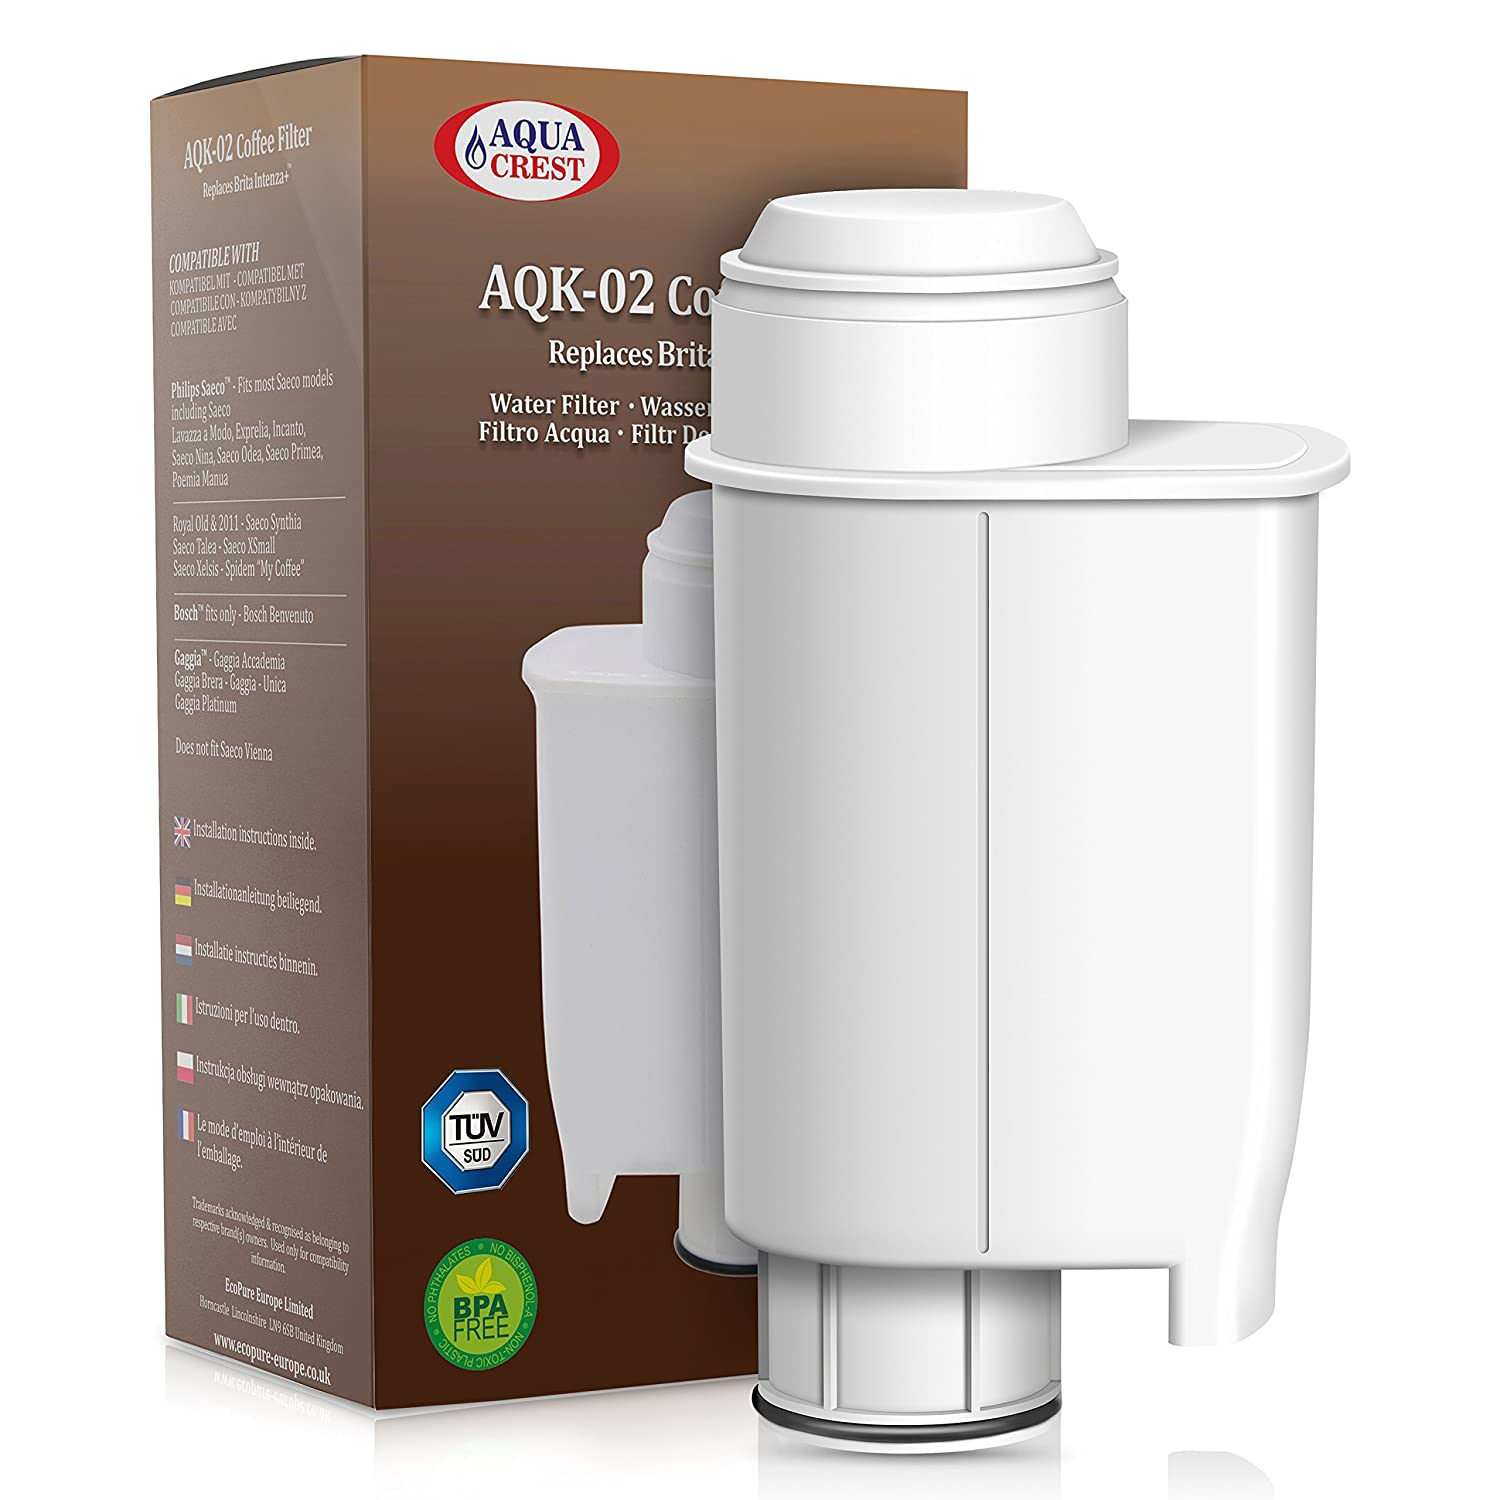 AQUACREST AQK-02 Intenza+ Replacement for Brita Intenza+ Philips Saeco CA6702/00 Intenza Coffee Water Filter EcoPure